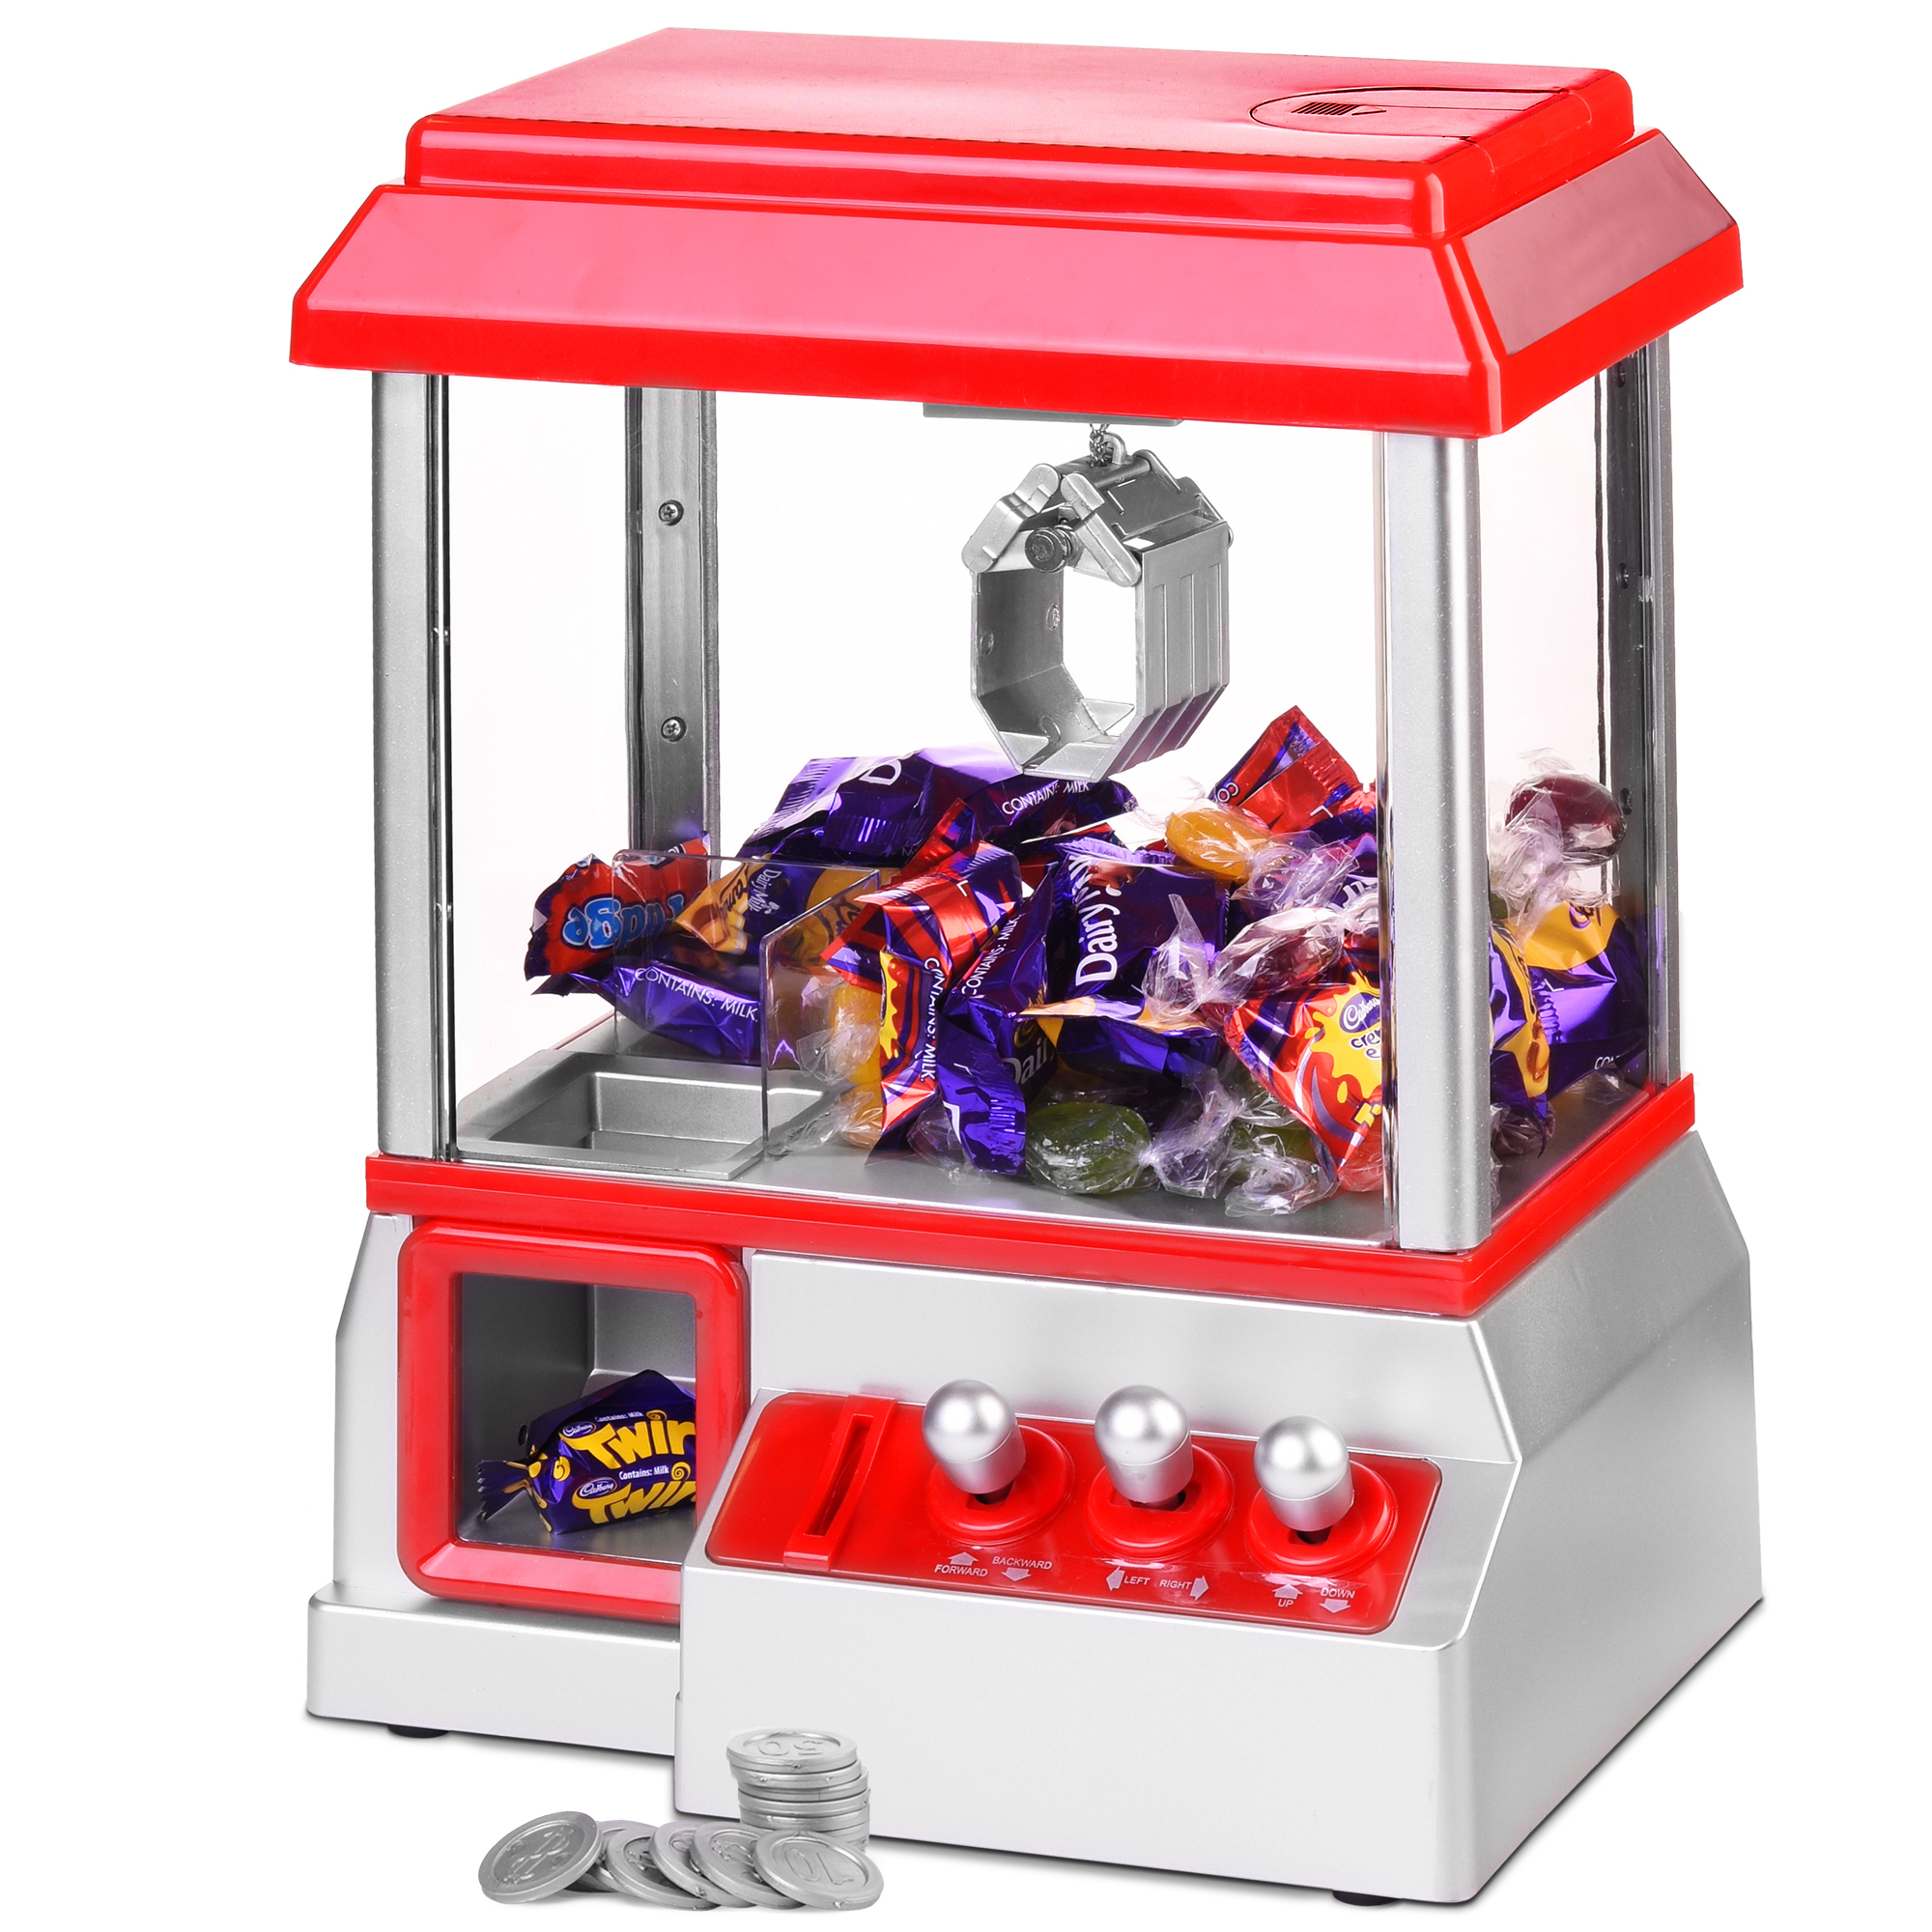 Arcade Candy Grabber Machine Toy Claw Game Kids Fun Crane